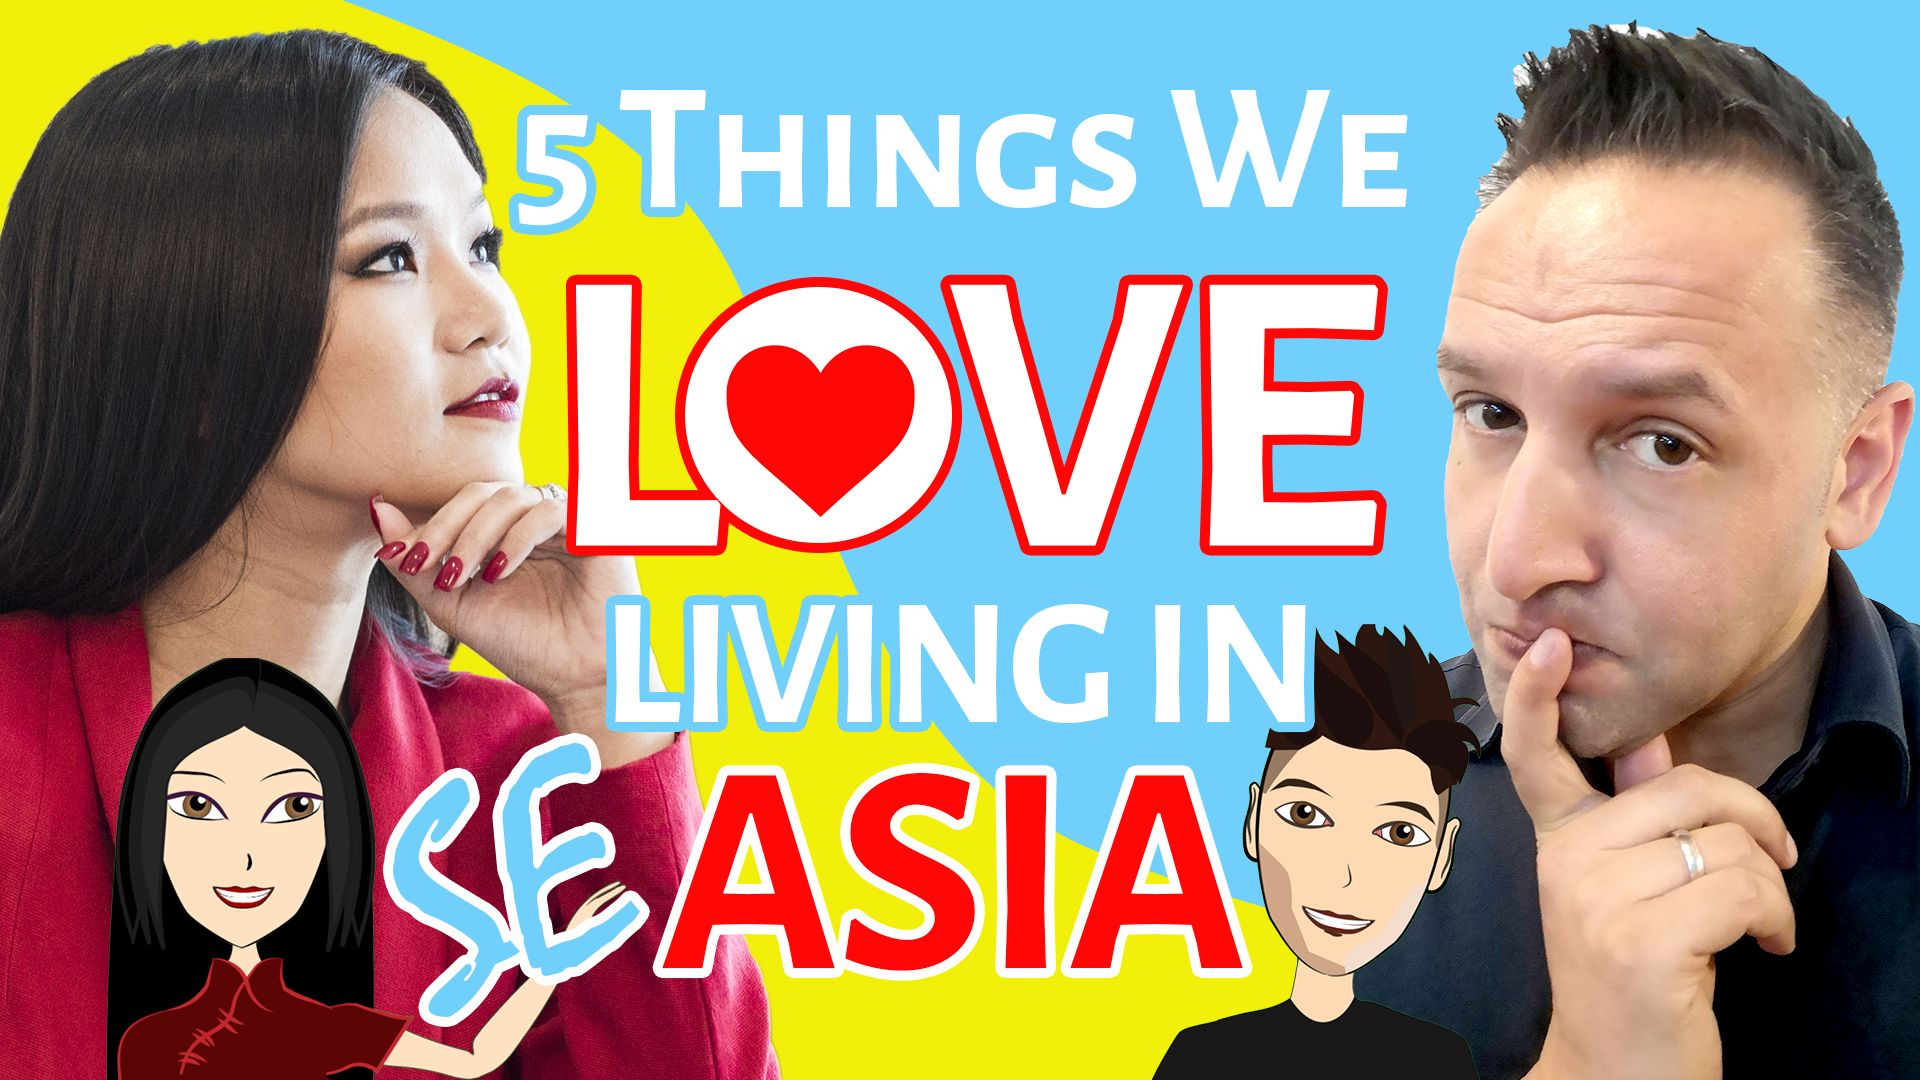 5 Things That will Blow You Away Living in SE Asia and Why We Love Living Here